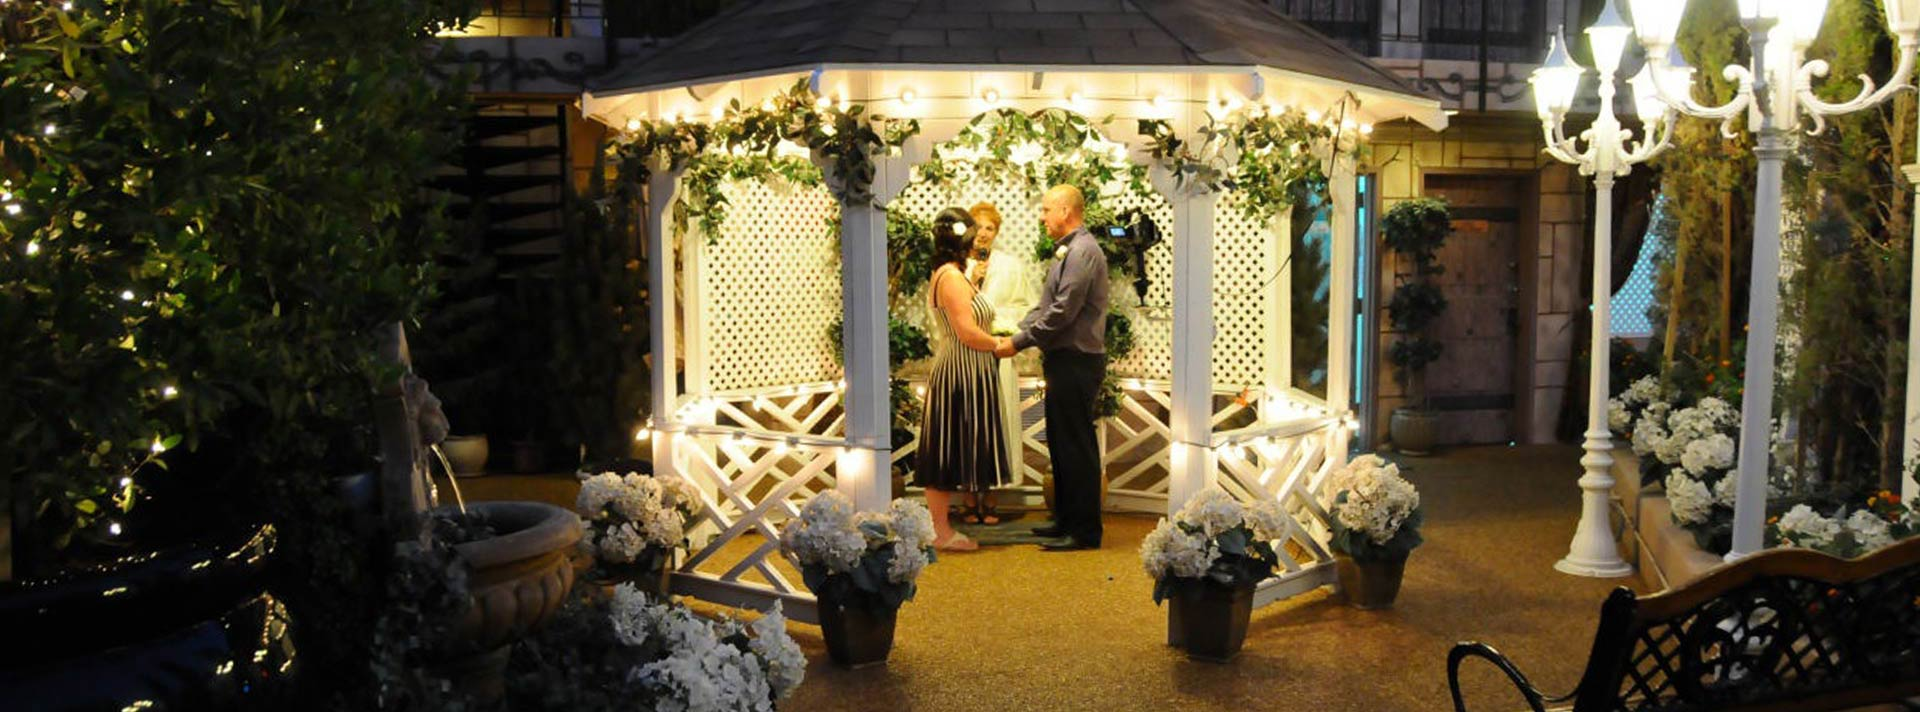 Wedding venues in las vegas nv garden chapel gazebo chapel for Best wedding chapels in vegas